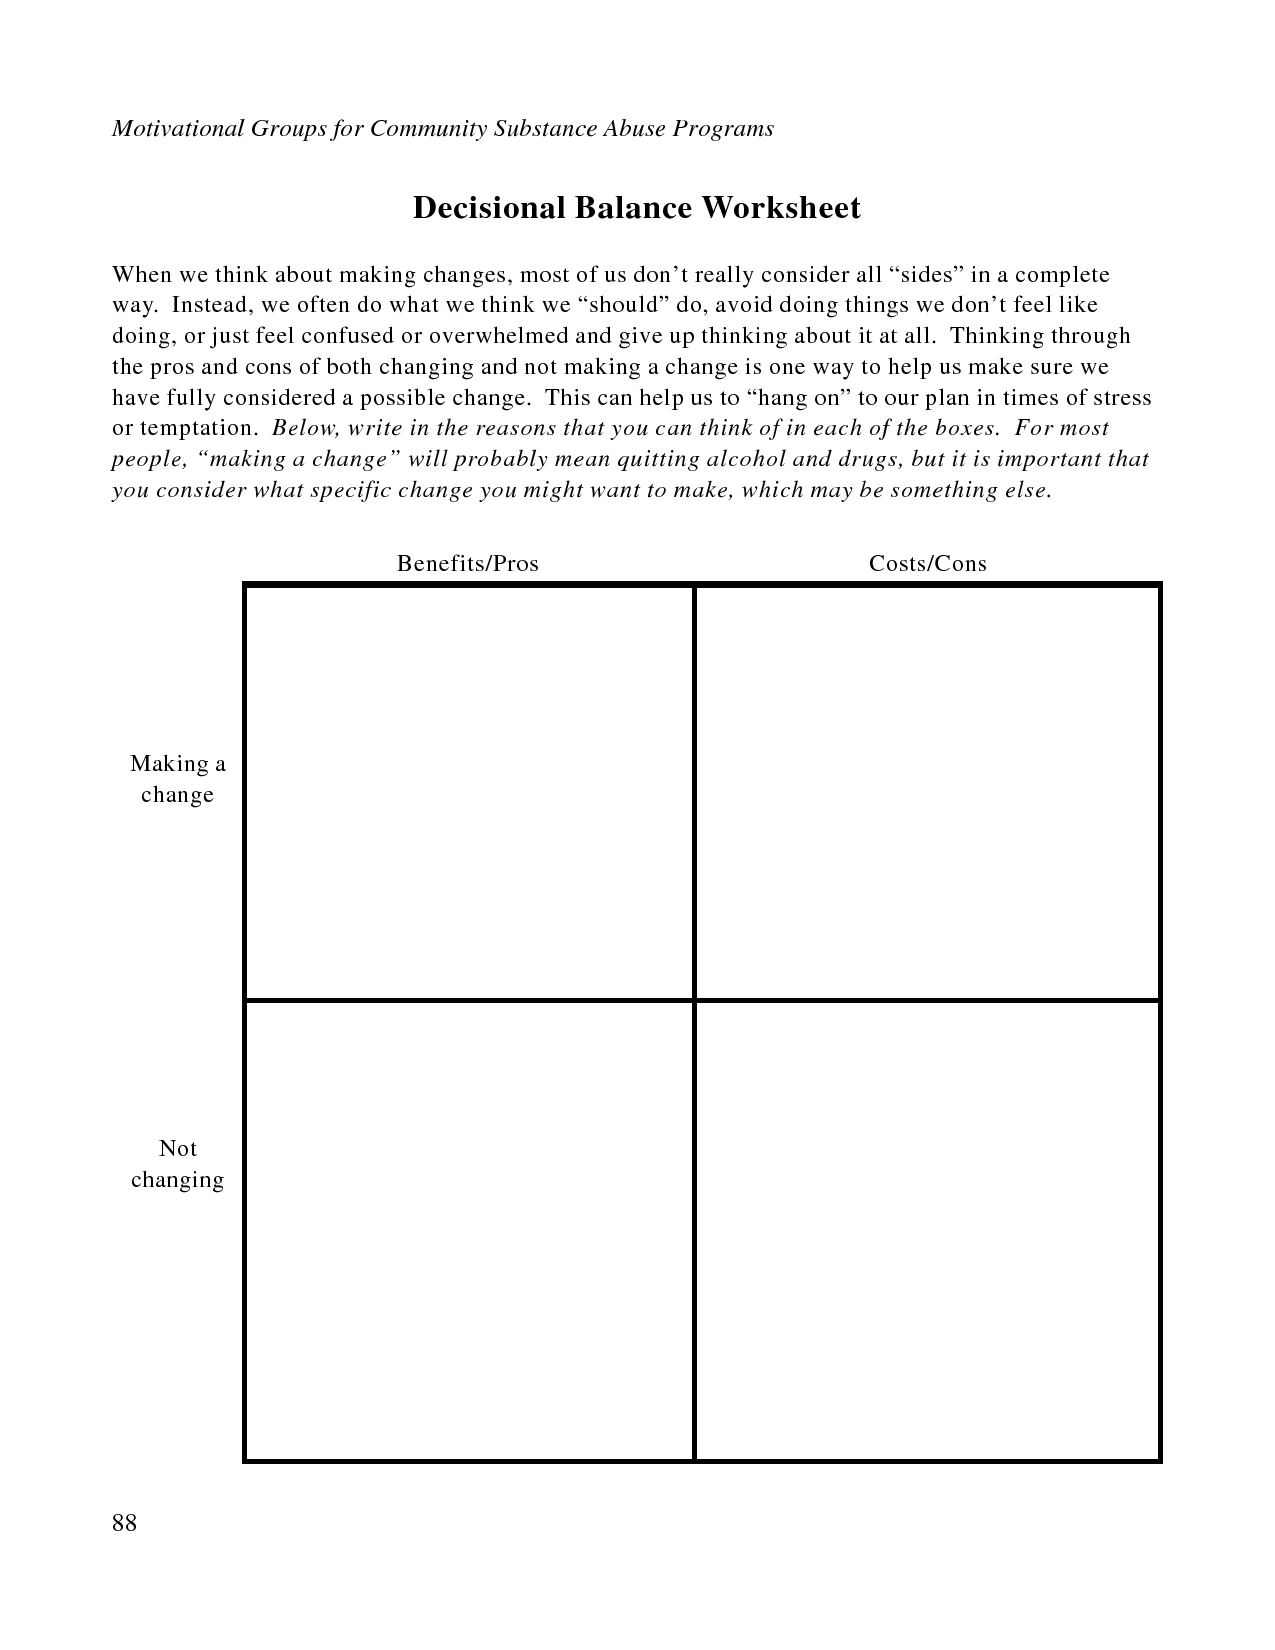 Free Printable Dbt Worksheets | Decisional Balance Worksheet - Pdf - Free Printable Therapy Worksheets